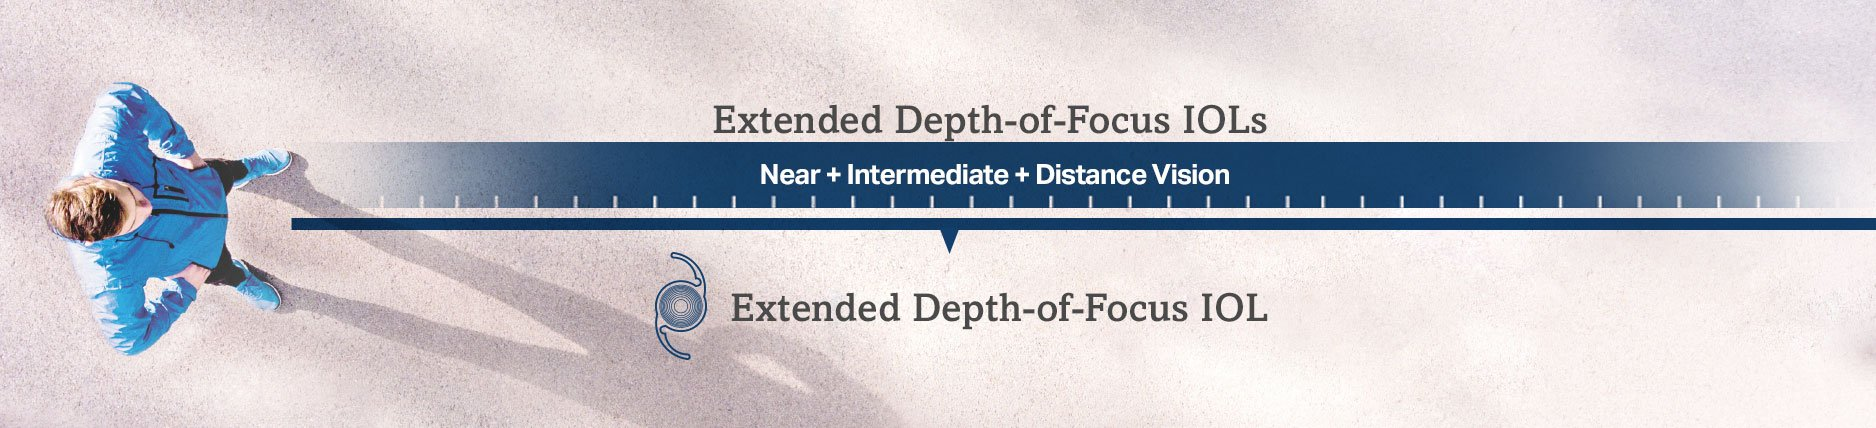 Man showing extended depth of focus for near, intermediate, and distance vision with extended depth-of-focus IOLs